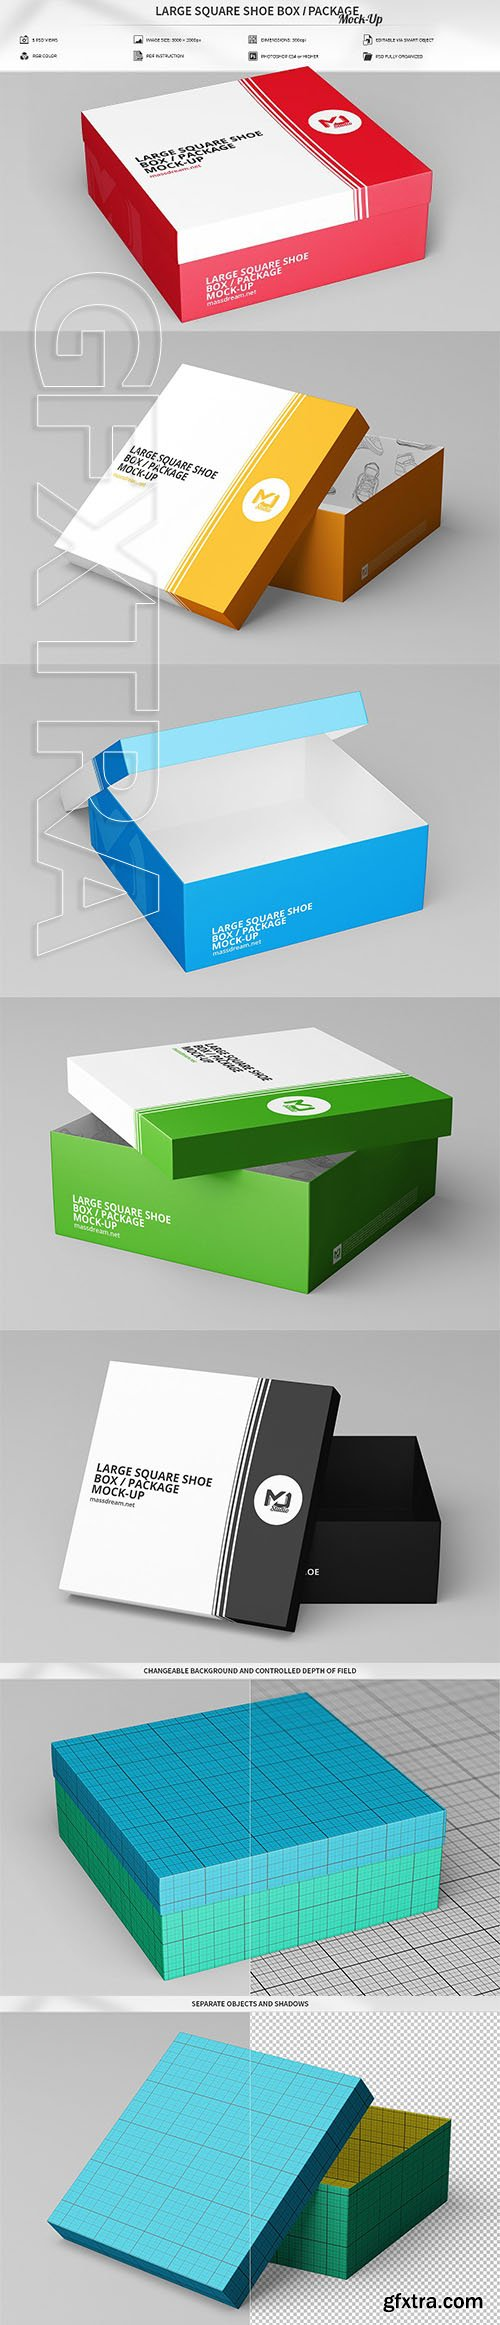 CreativeMarket - Large Square Shoe Box Package Mock 2998824